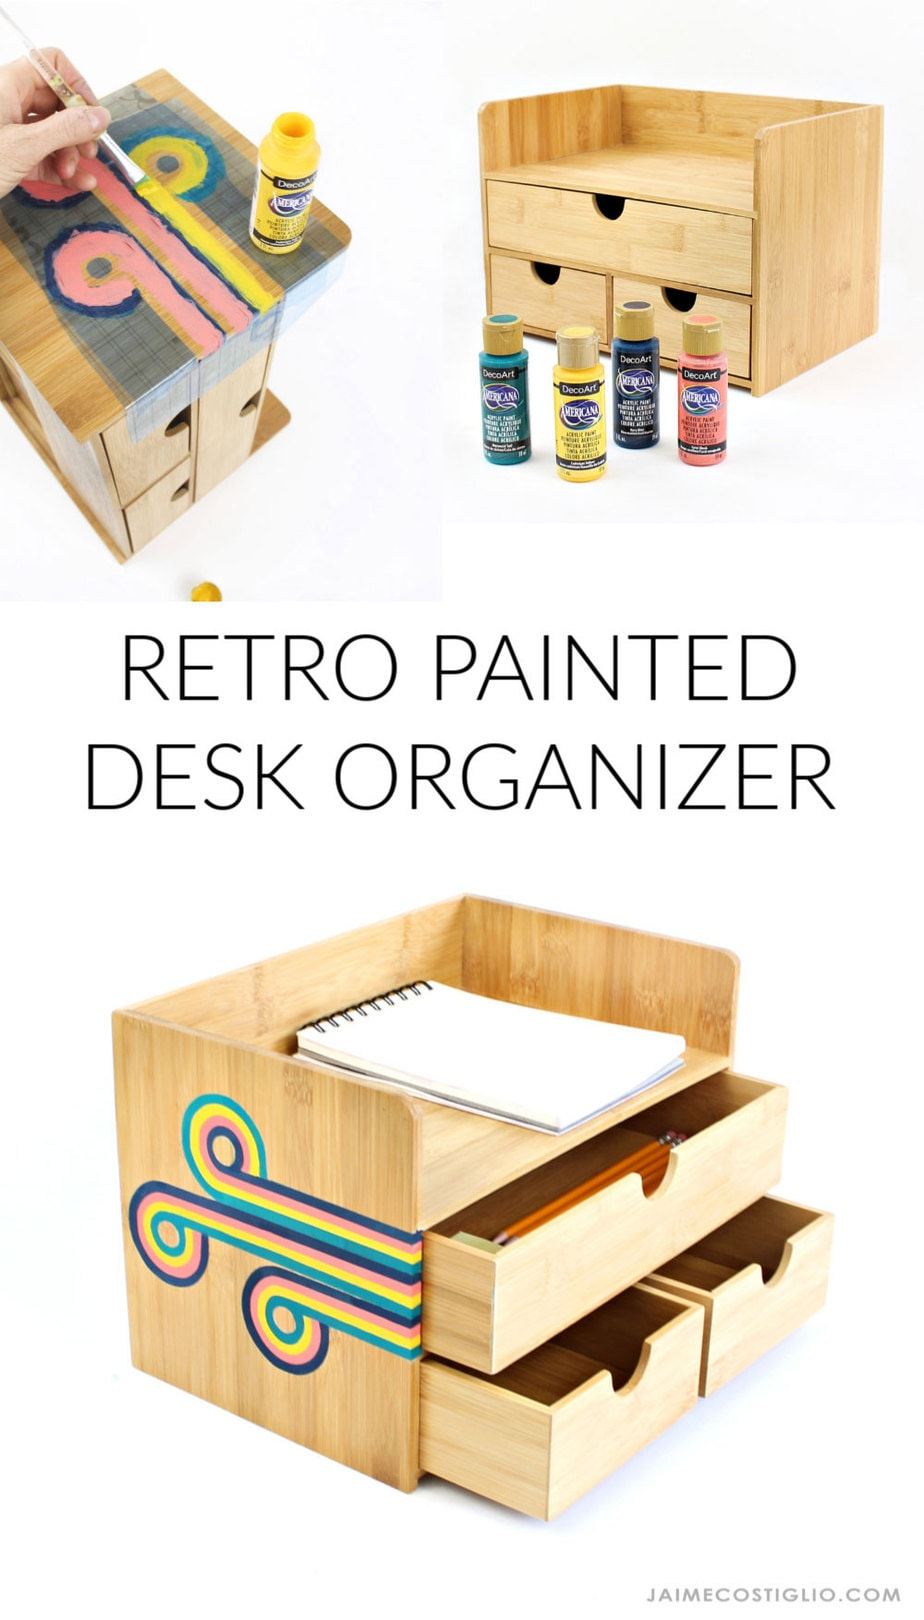 diy retro painted desk organizer project